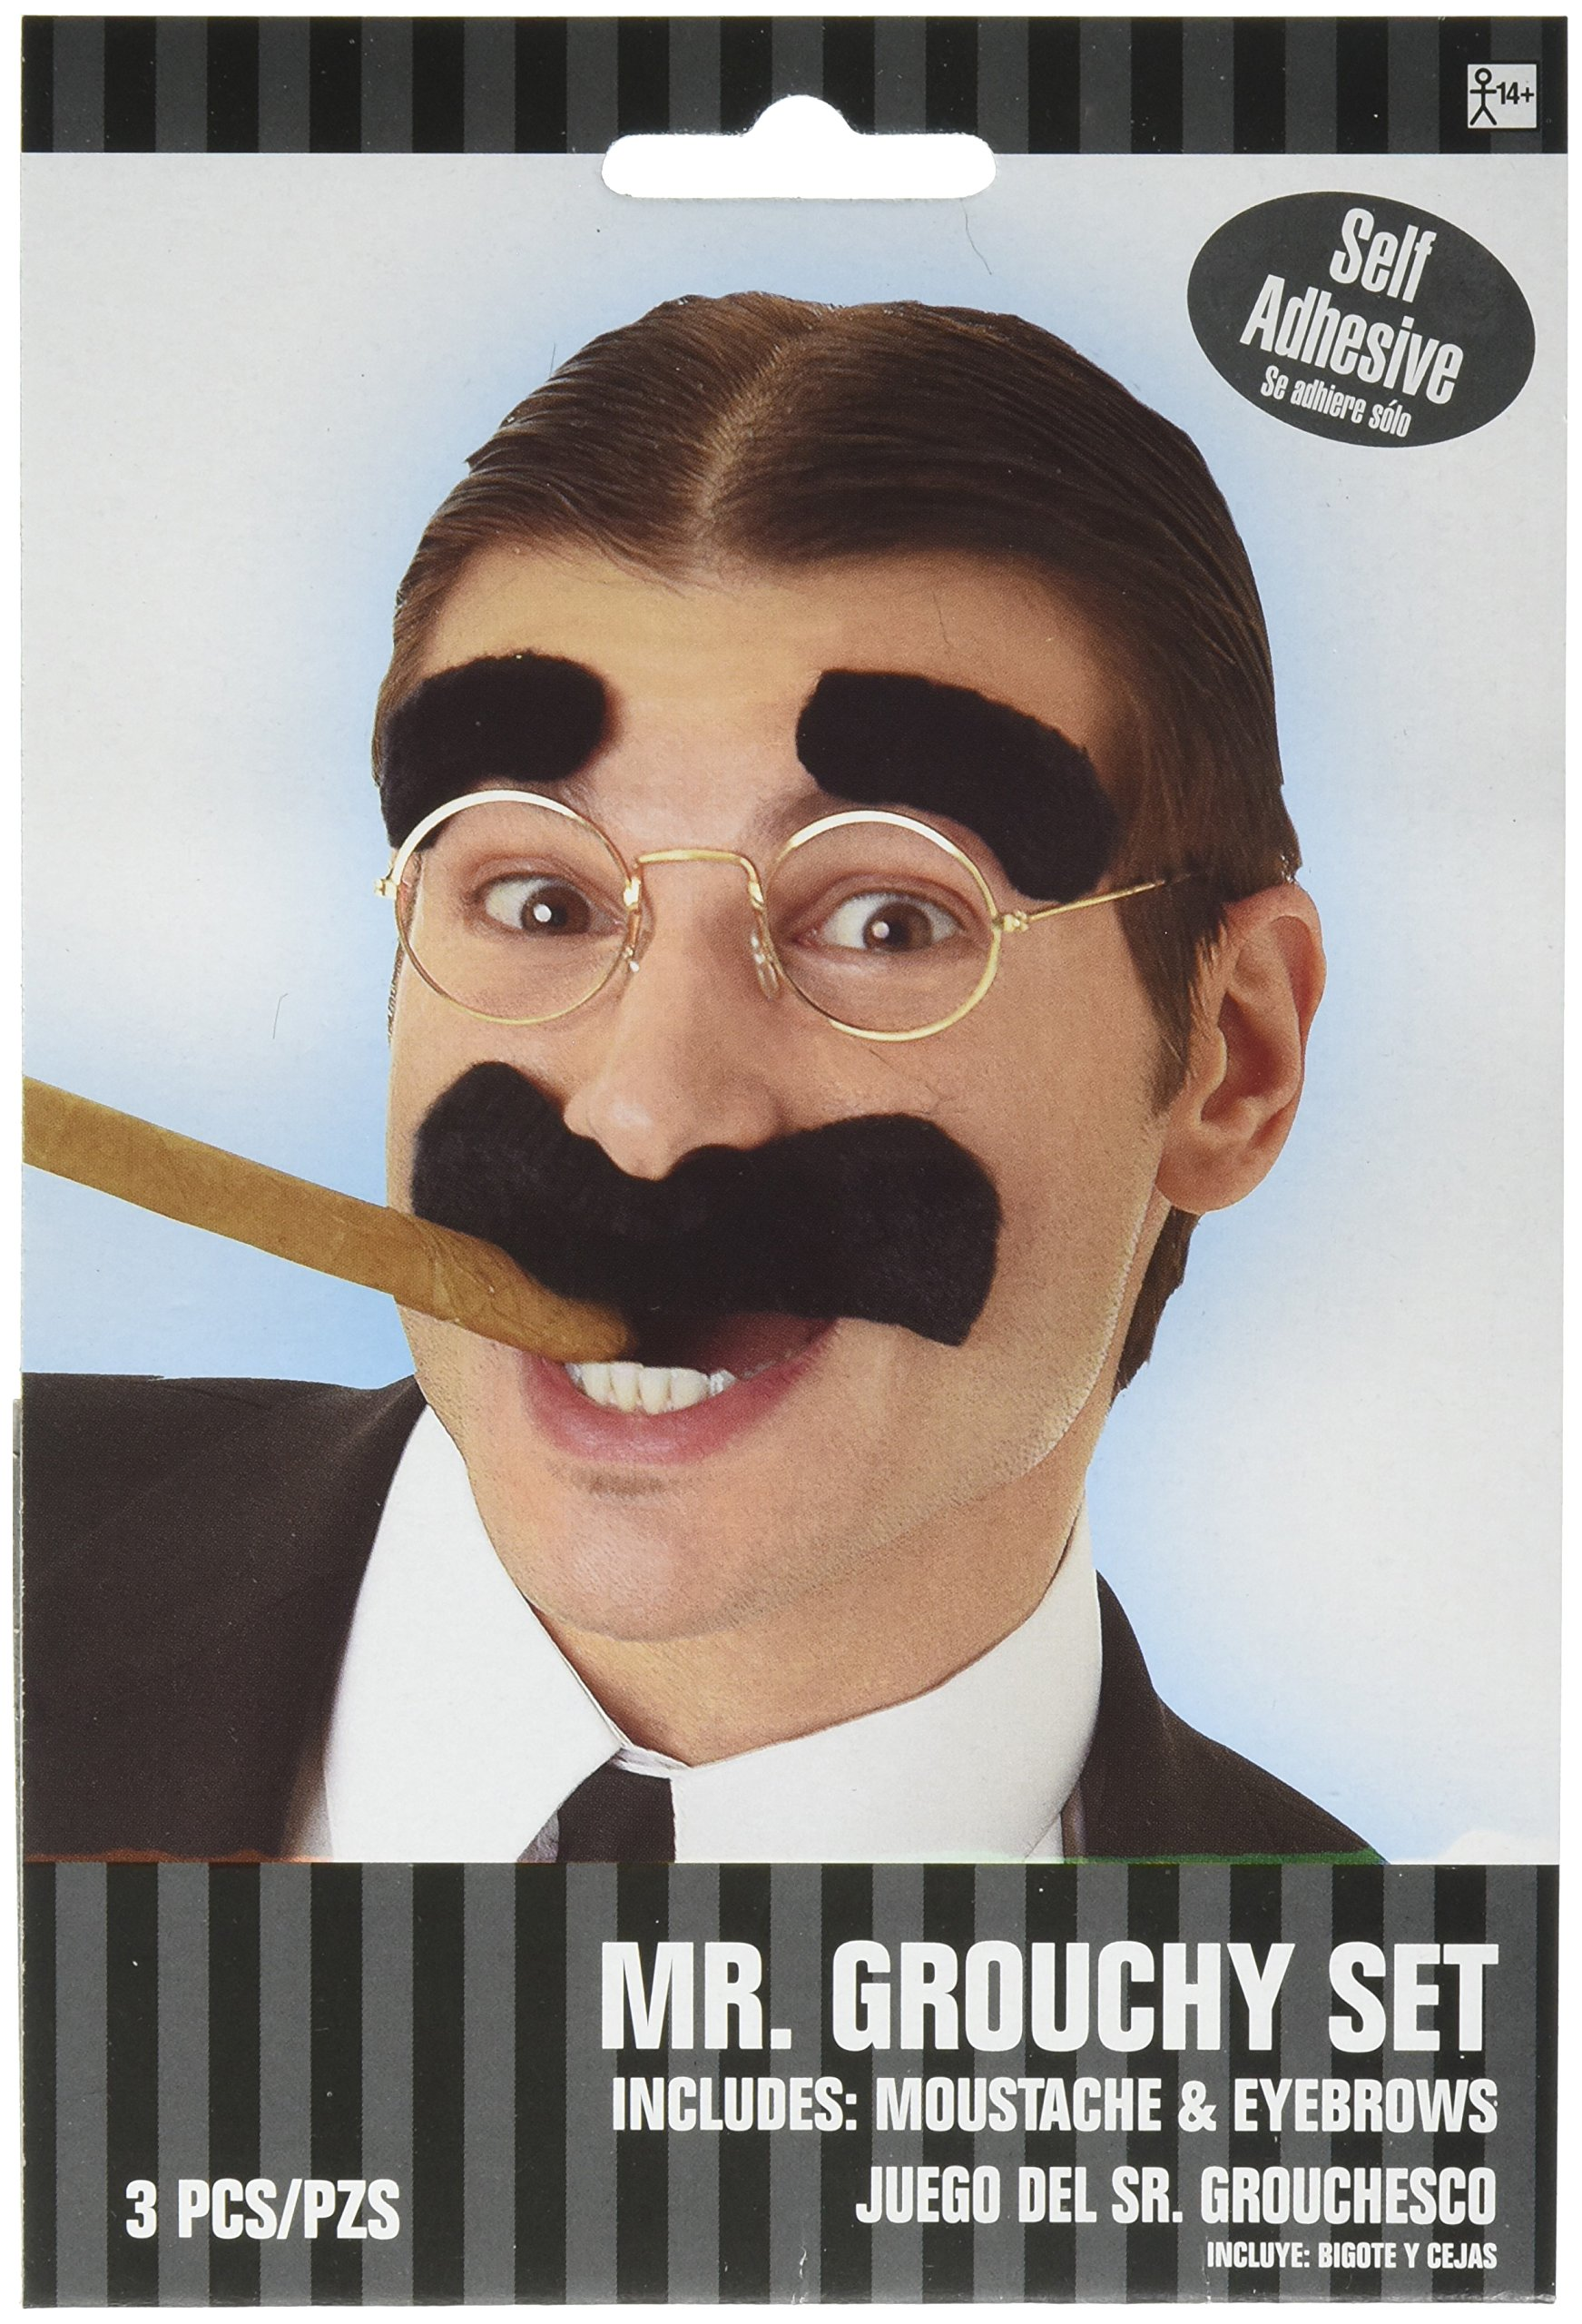 Wacky Mr. Grouchy Facial Hair Set, Moustache and Eyebrows, Self Adhesive, 2 piece